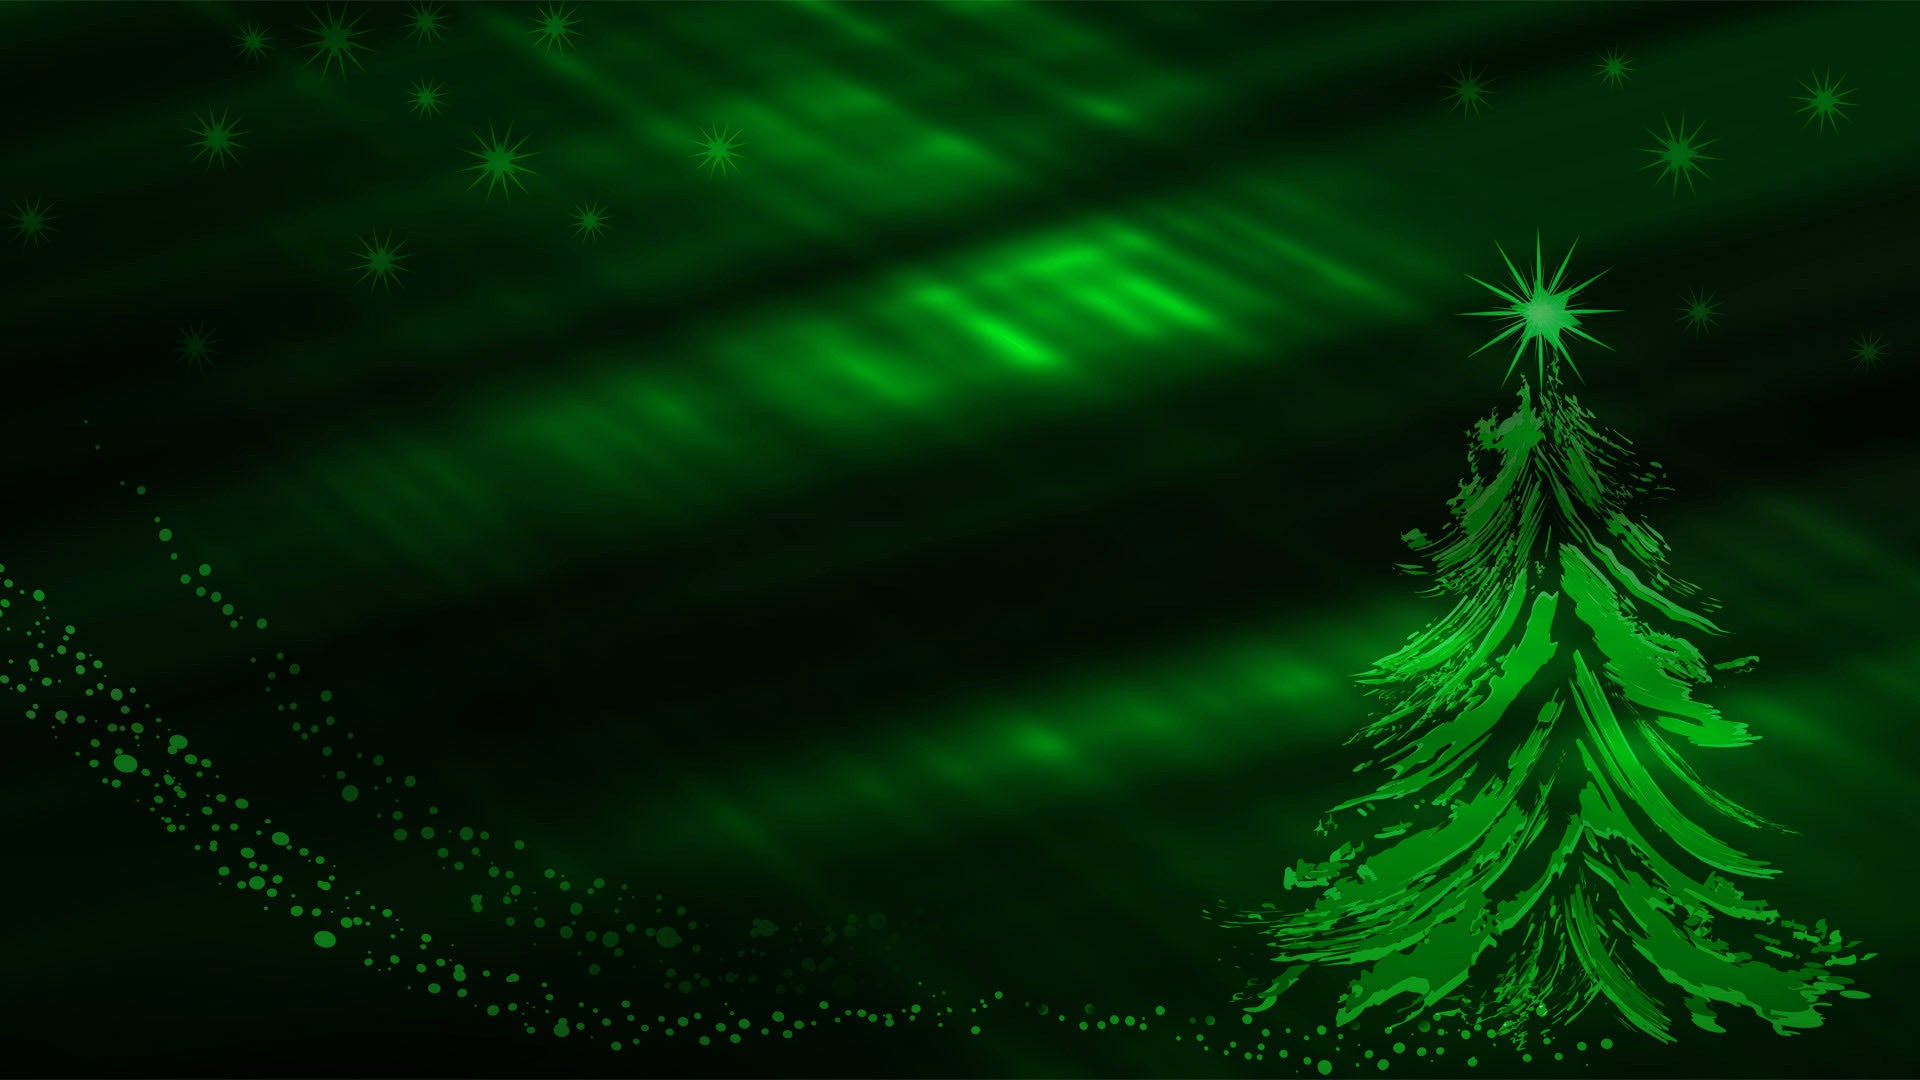 Christian Christmas Backgrounds, Images and Mini Movies